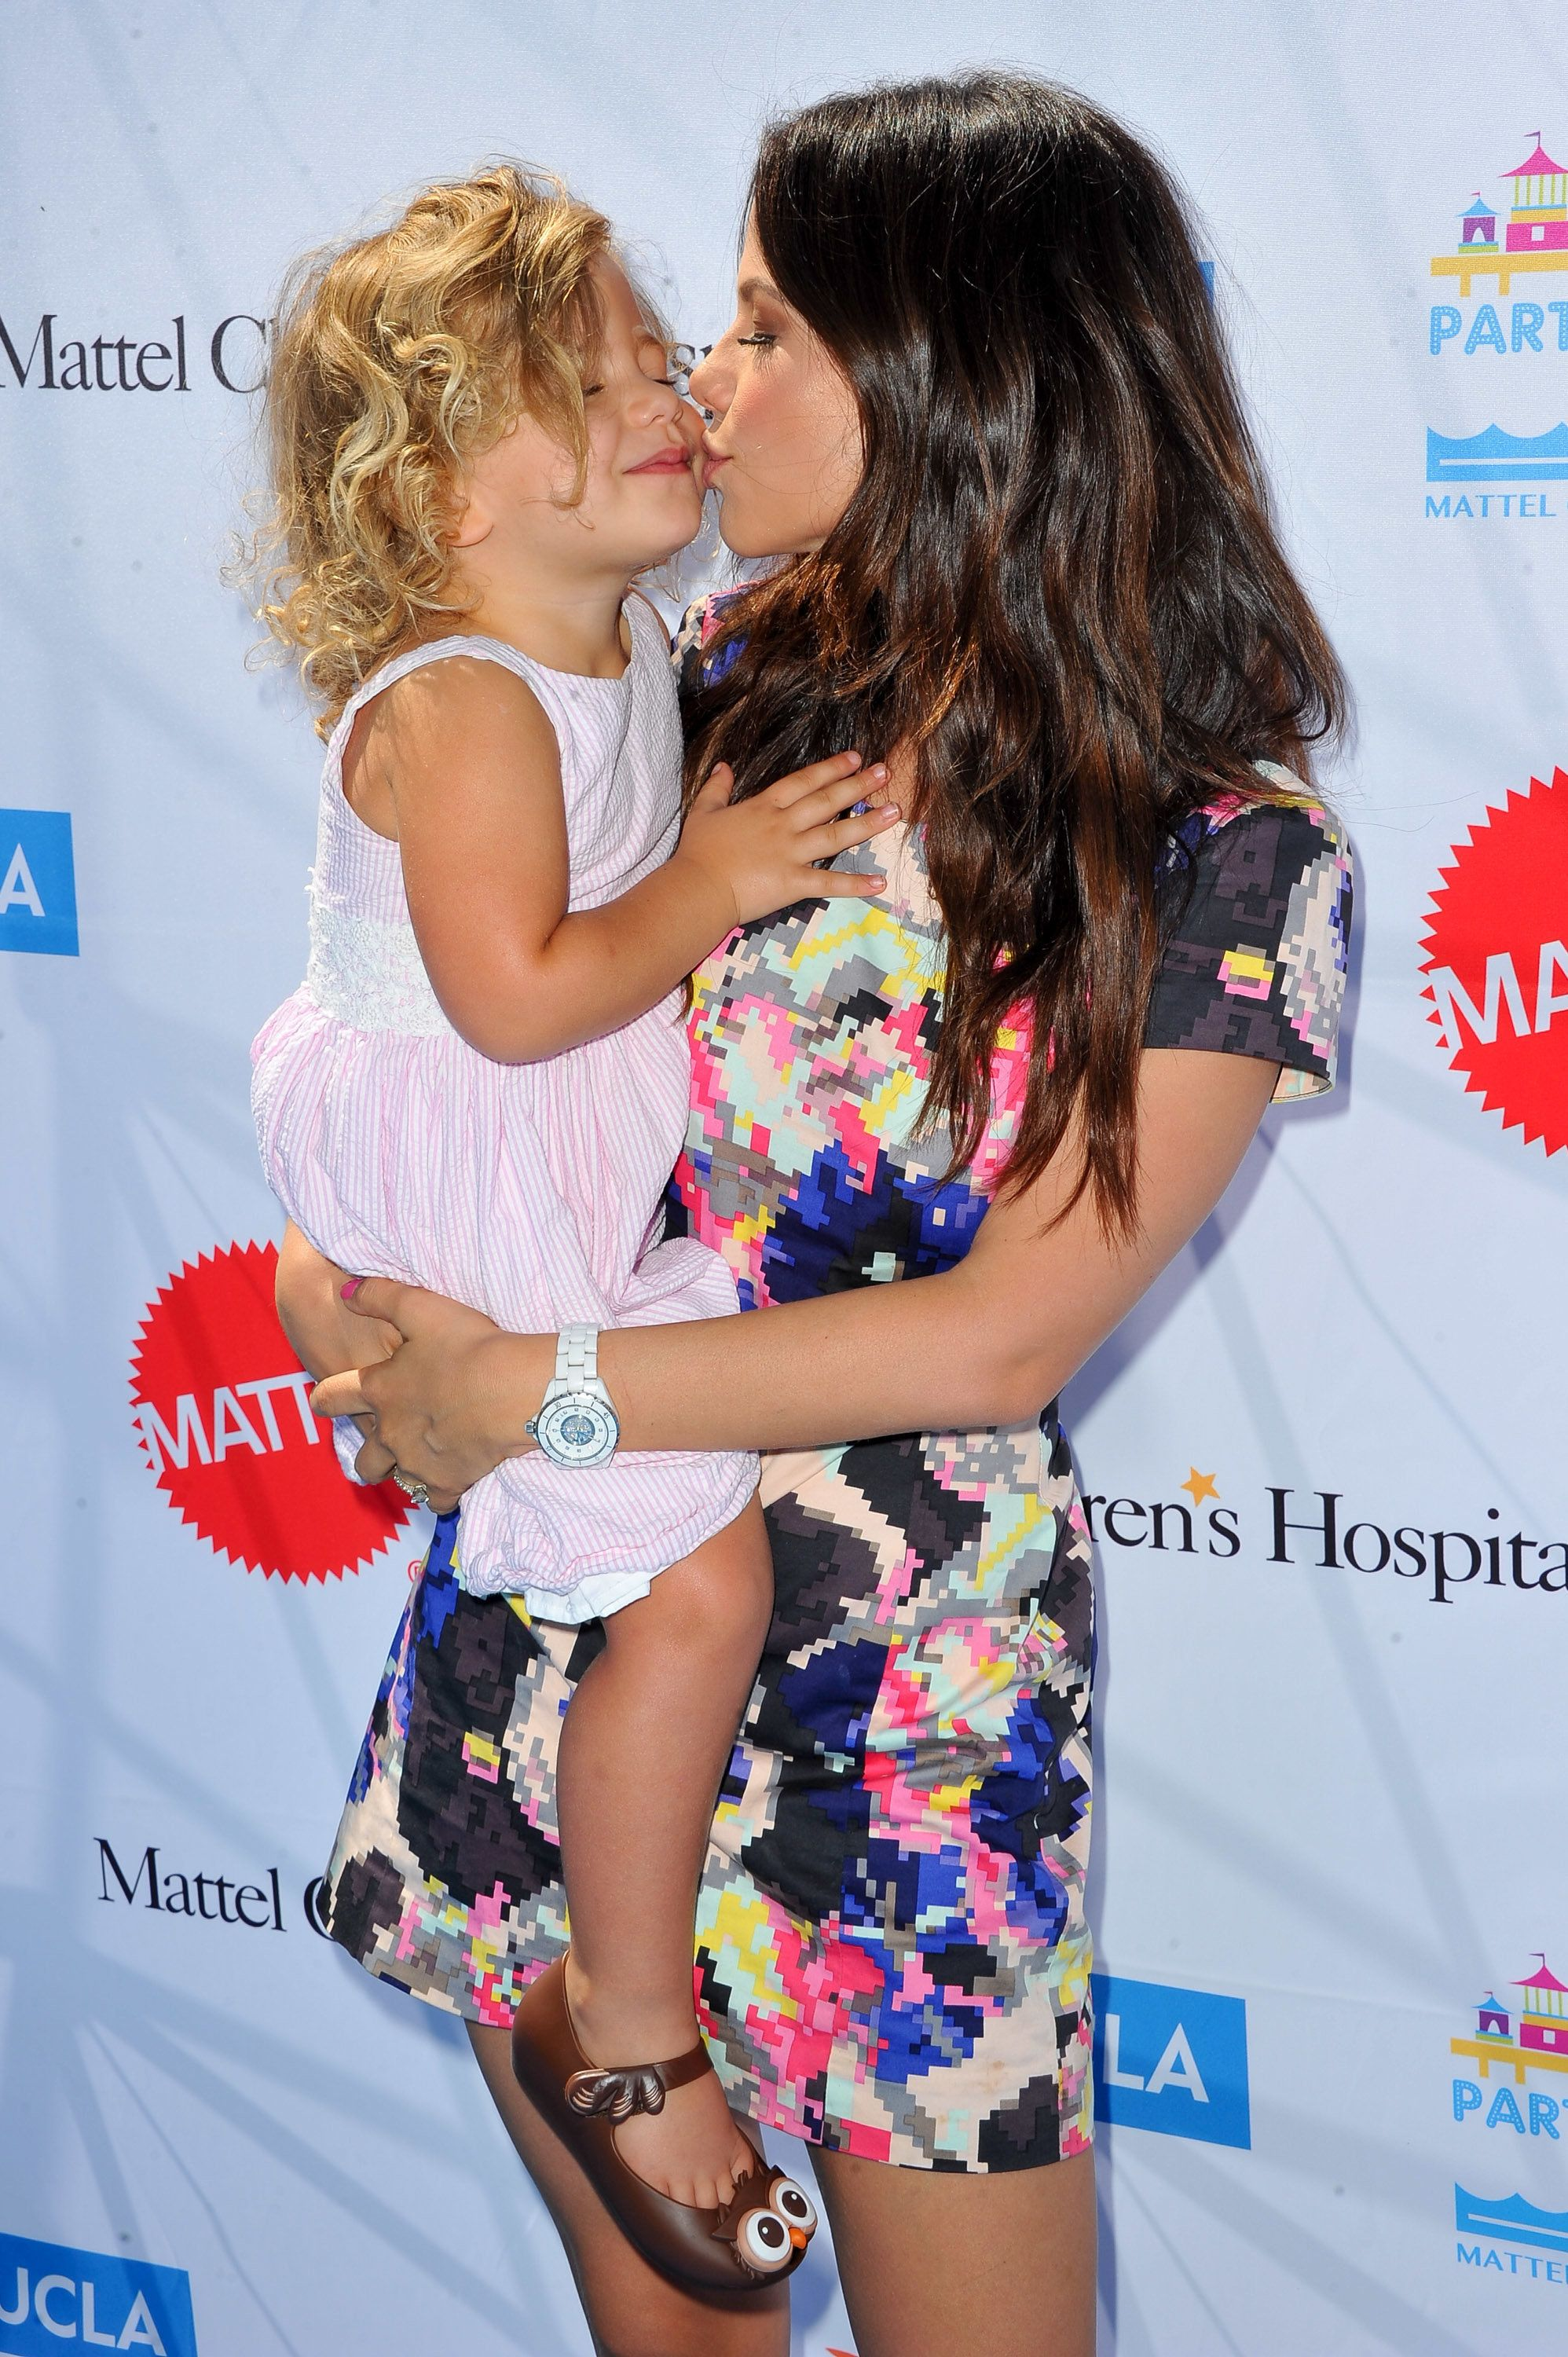 In a new essay, Tammin Sursok wrote about experiencing postpartum anxiety after she had her daughter, Phoenix.